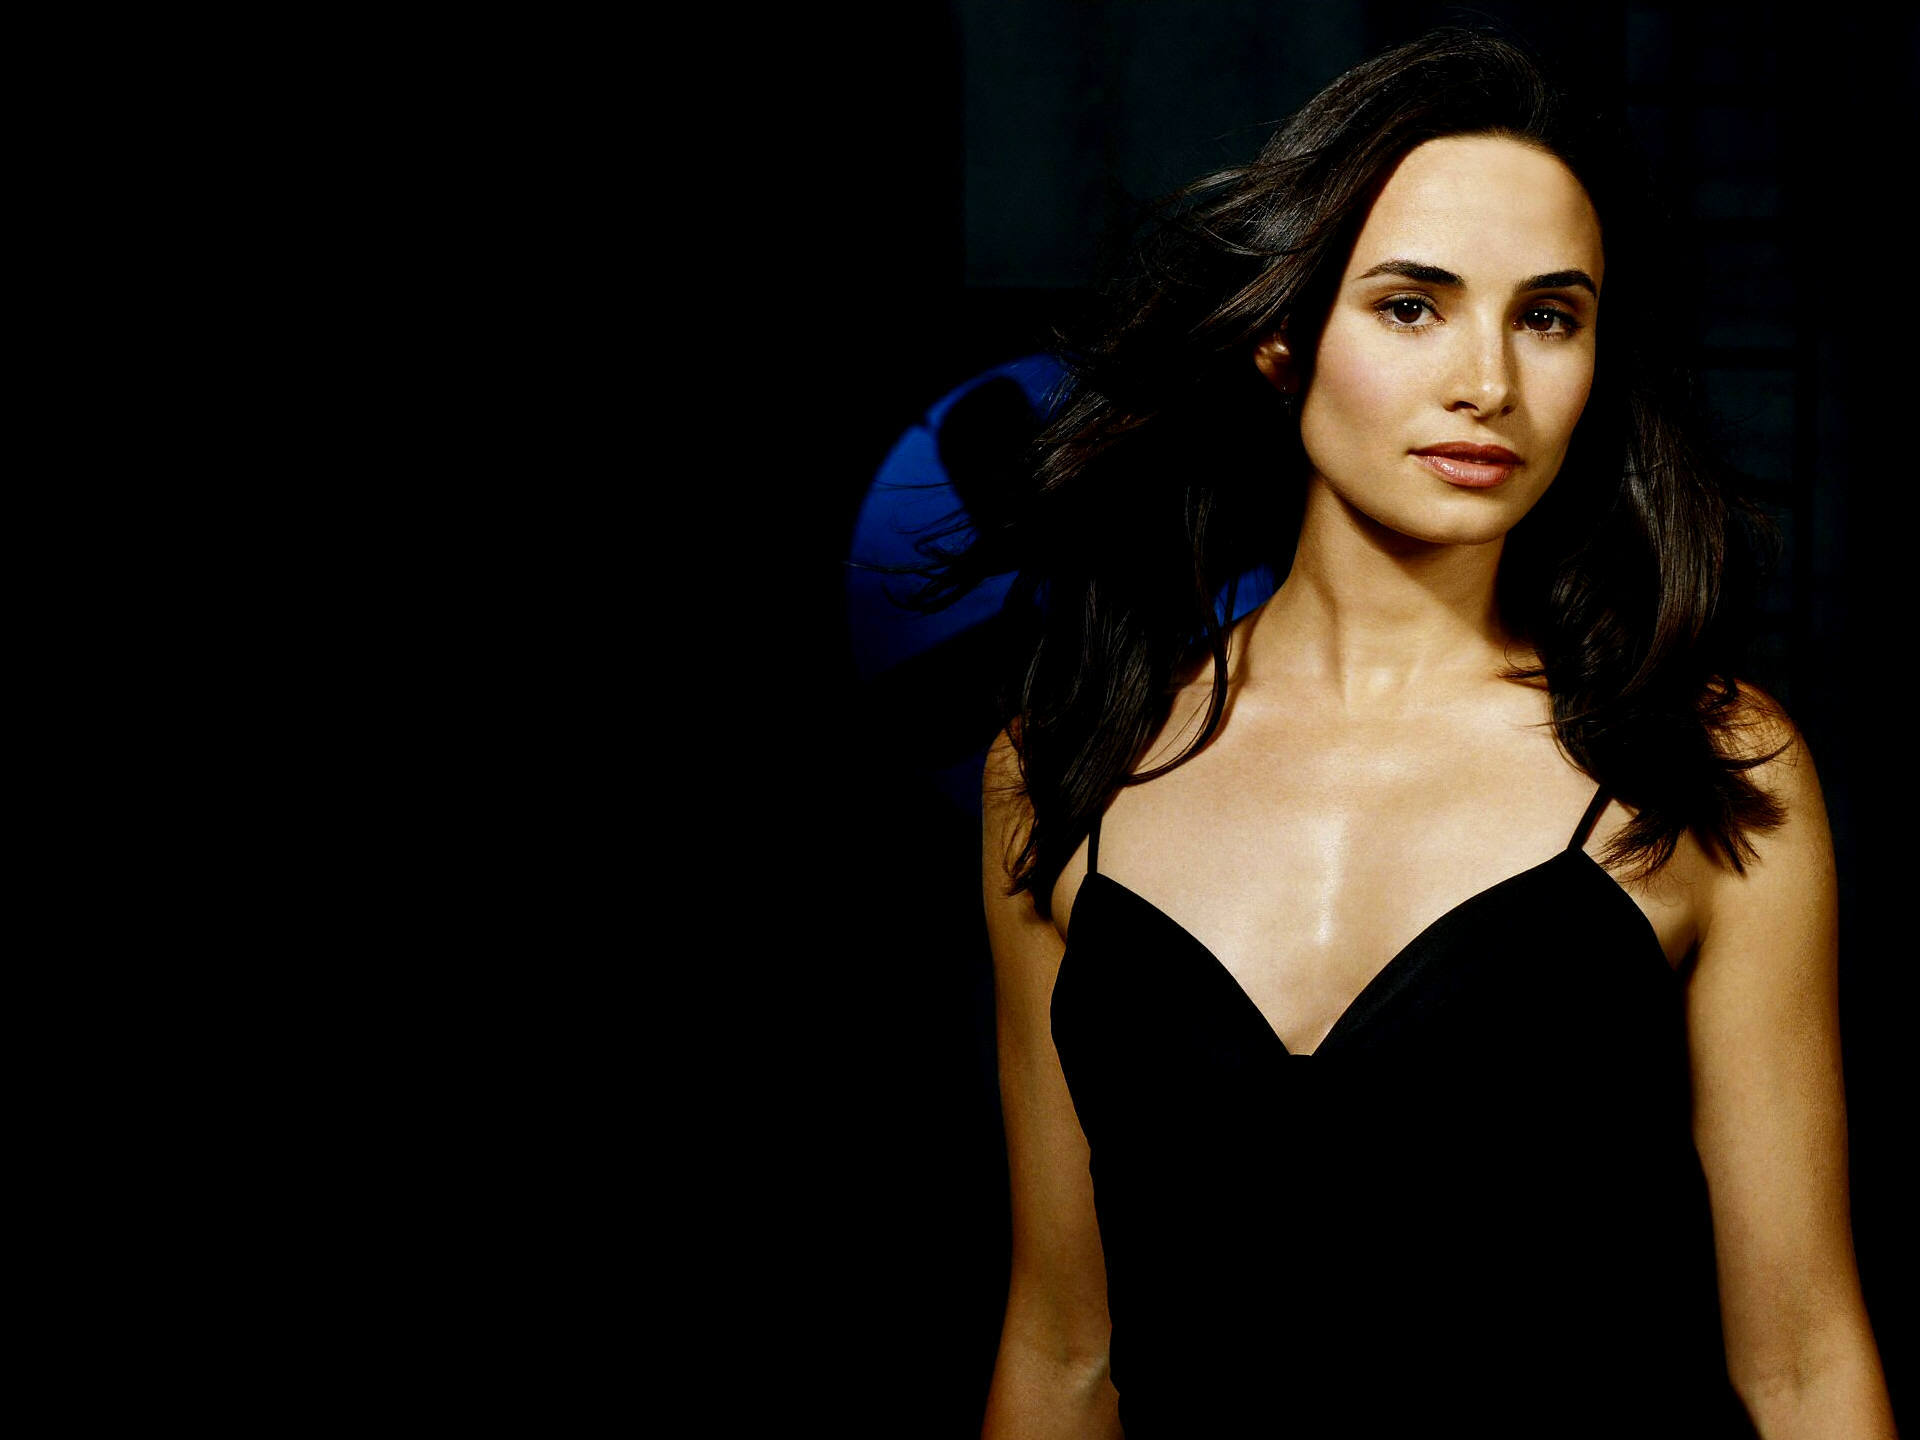 Mia Maestro Wallpaper